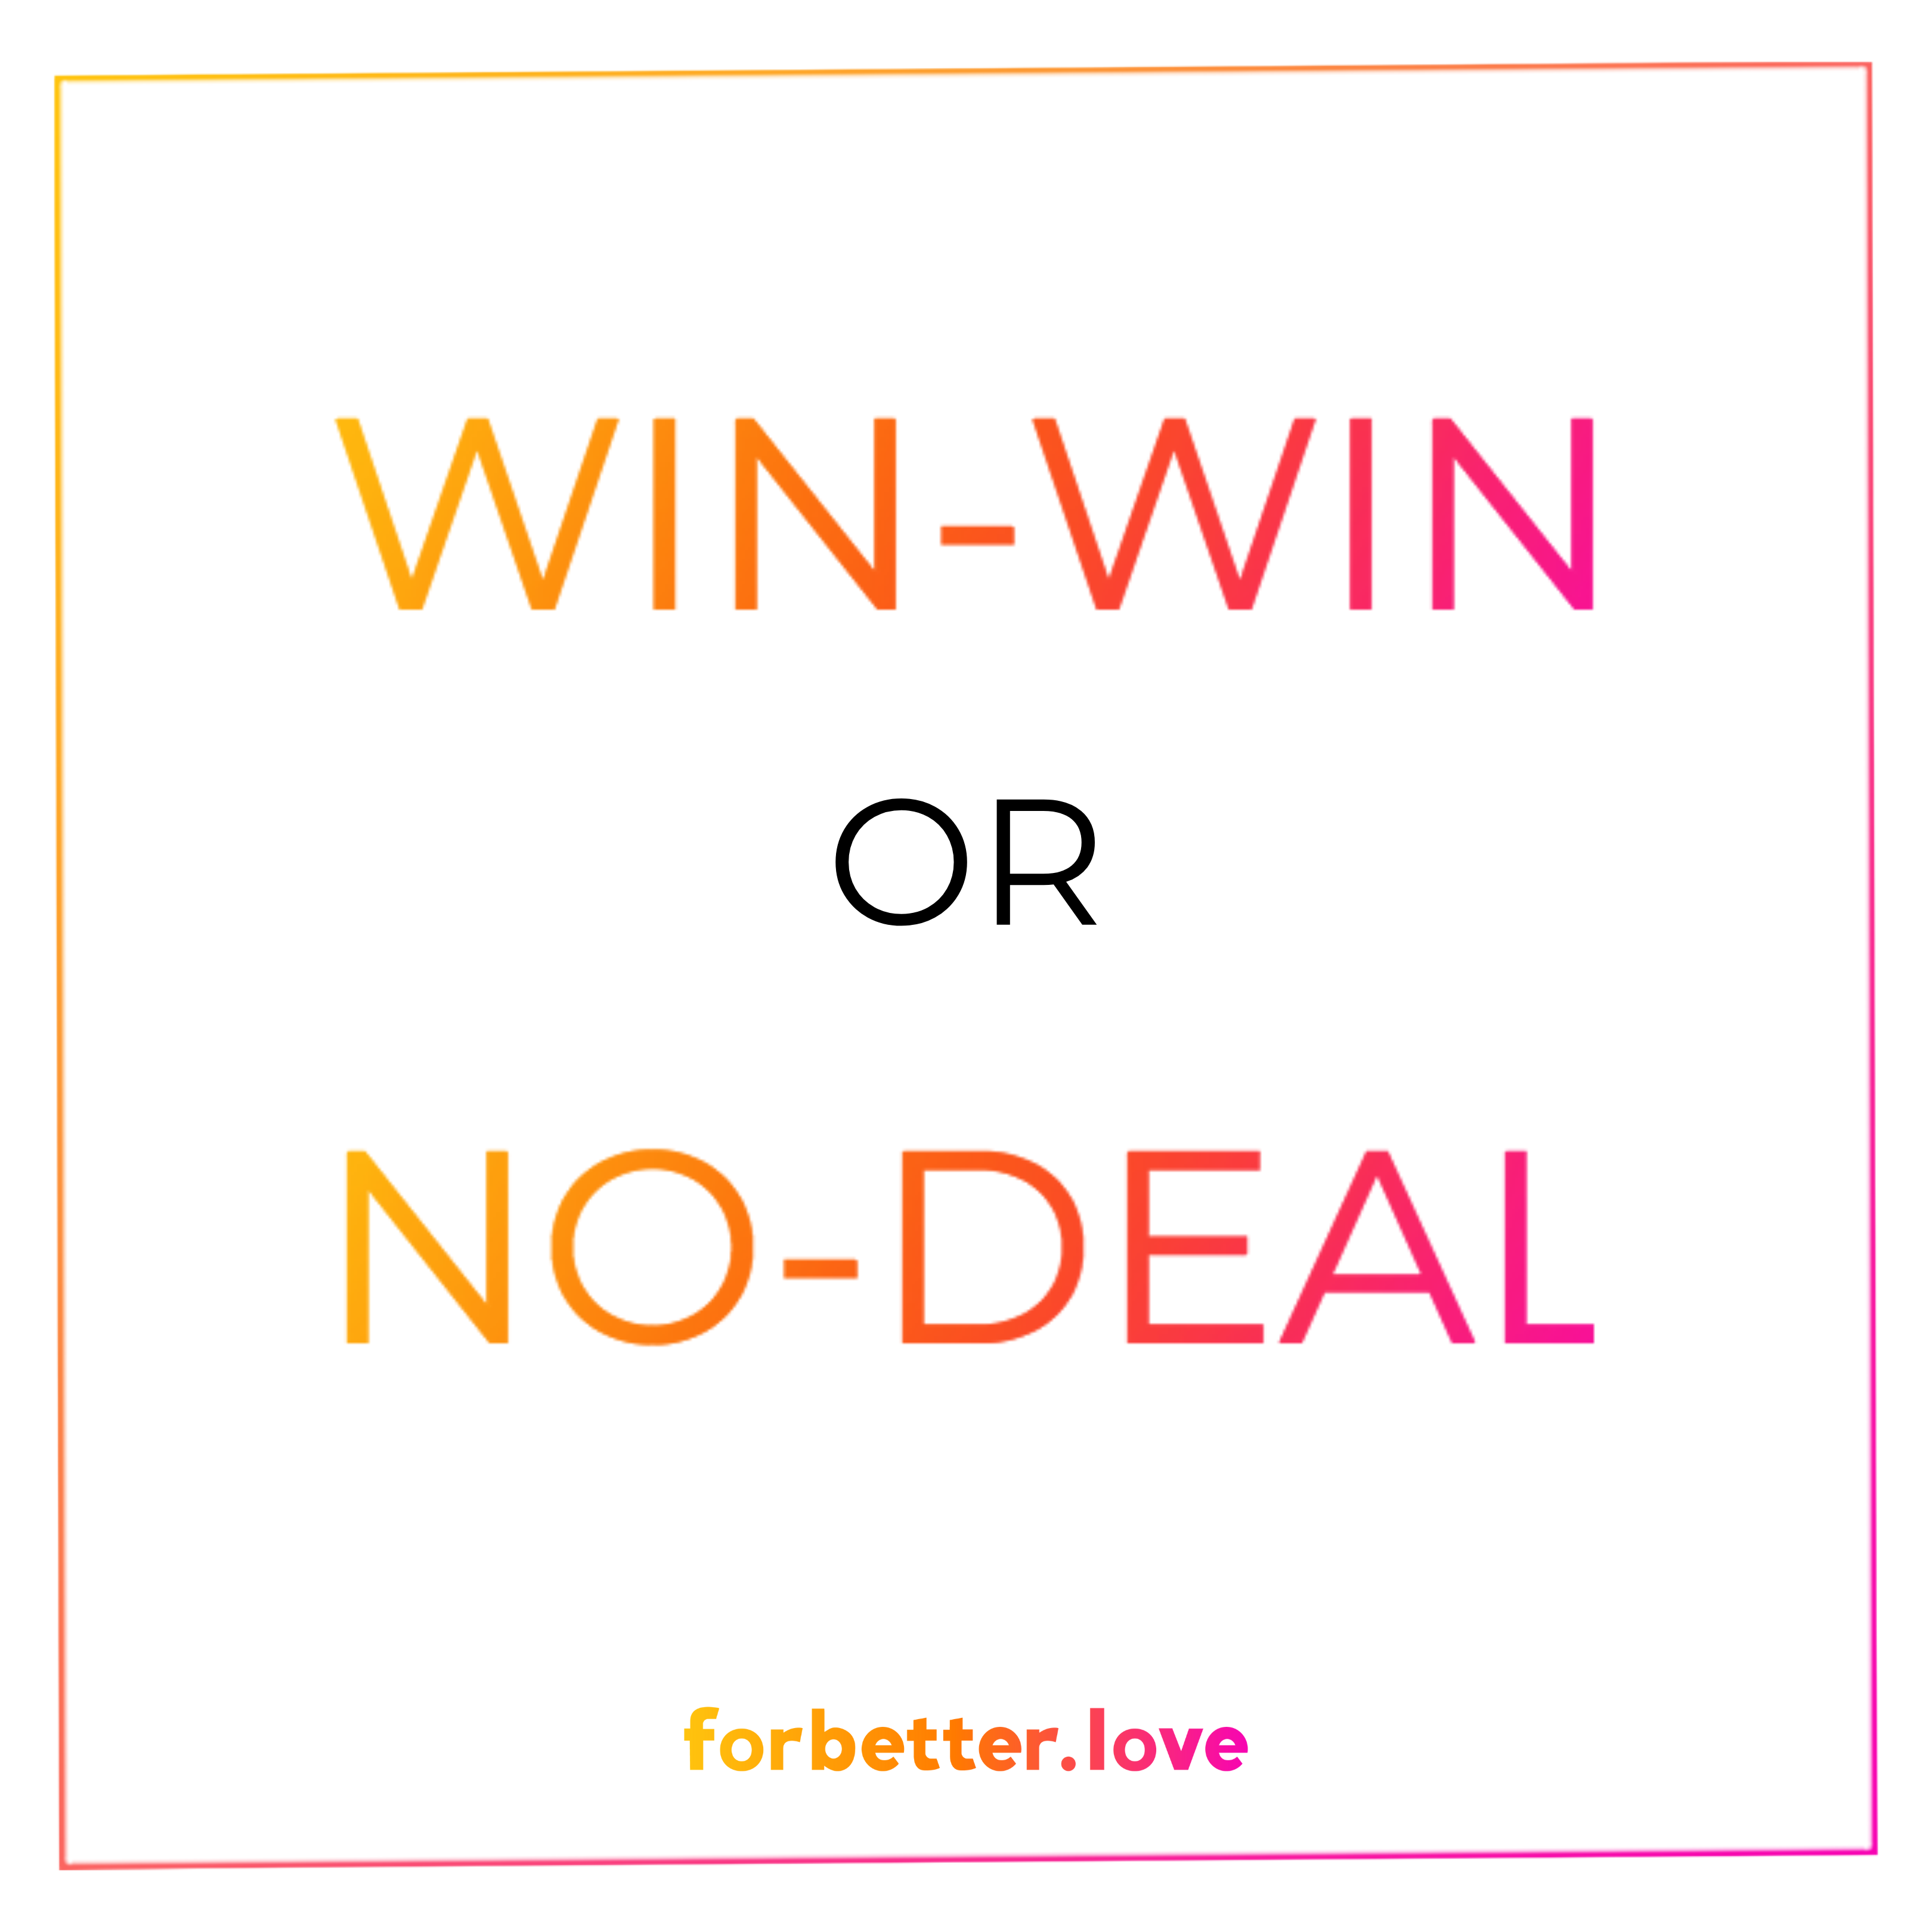 FOR BETTER LOVE-WIN-WIN OR NO DEAL?